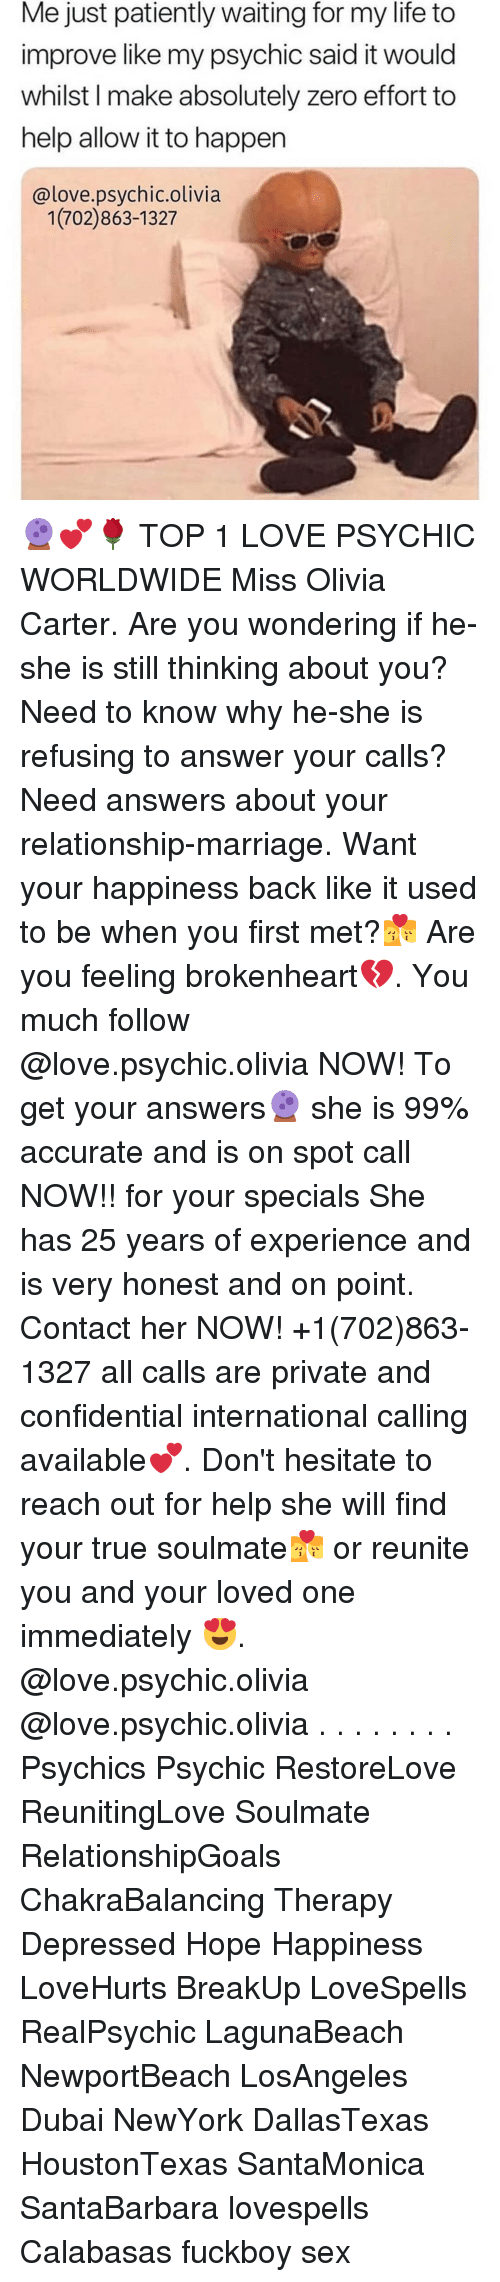 brokenheart: Me just patiently waiting for my life to  improve like my psychic said it would  whilst I make absolutely zero effort to  help allow it to happen  @love.psychic.olivia  1(702)863-1327 🔮💕🌹 TOP 1 LOVE PSYCHIC WORLDWIDE Miss Olivia Carter. Are you wondering if he-she is still thinking about you? Need to know why he-she is refusing to answer your calls? Need answers about your relationship-marriage. Want your happiness back like it used to be when you first met?💏 Are you feeling brokenheart💔. You much follow @love.psychic.olivia NOW! To get your answers🔮 she is 99% accurate and is on spot call NOW!! for your specials She has 25 years of experience and is very honest and on point. Contact her NOW! +1(702)863-1327 all calls are private and confidential international calling available💕. Don't hesitate to reach out for help she will find your true soulmate💏 or reunite you and your loved one immediately 😍. @love.psychic.olivia @love.psychic.olivia . . . . . . . . Psychics Psychic RestoreLove ReunitingLove Soulmate RelationshipGoals ChakraBalancing Therapy Depressed Hope Happiness LoveHurts BreakUp LoveSpells RealPsychic LagunaBeach NewportBeach LosAngeles Dubai NewYork DallasTexas HoustonTexas SantaMonica SantaBarbara lovespells Calabasas fuckboy sex